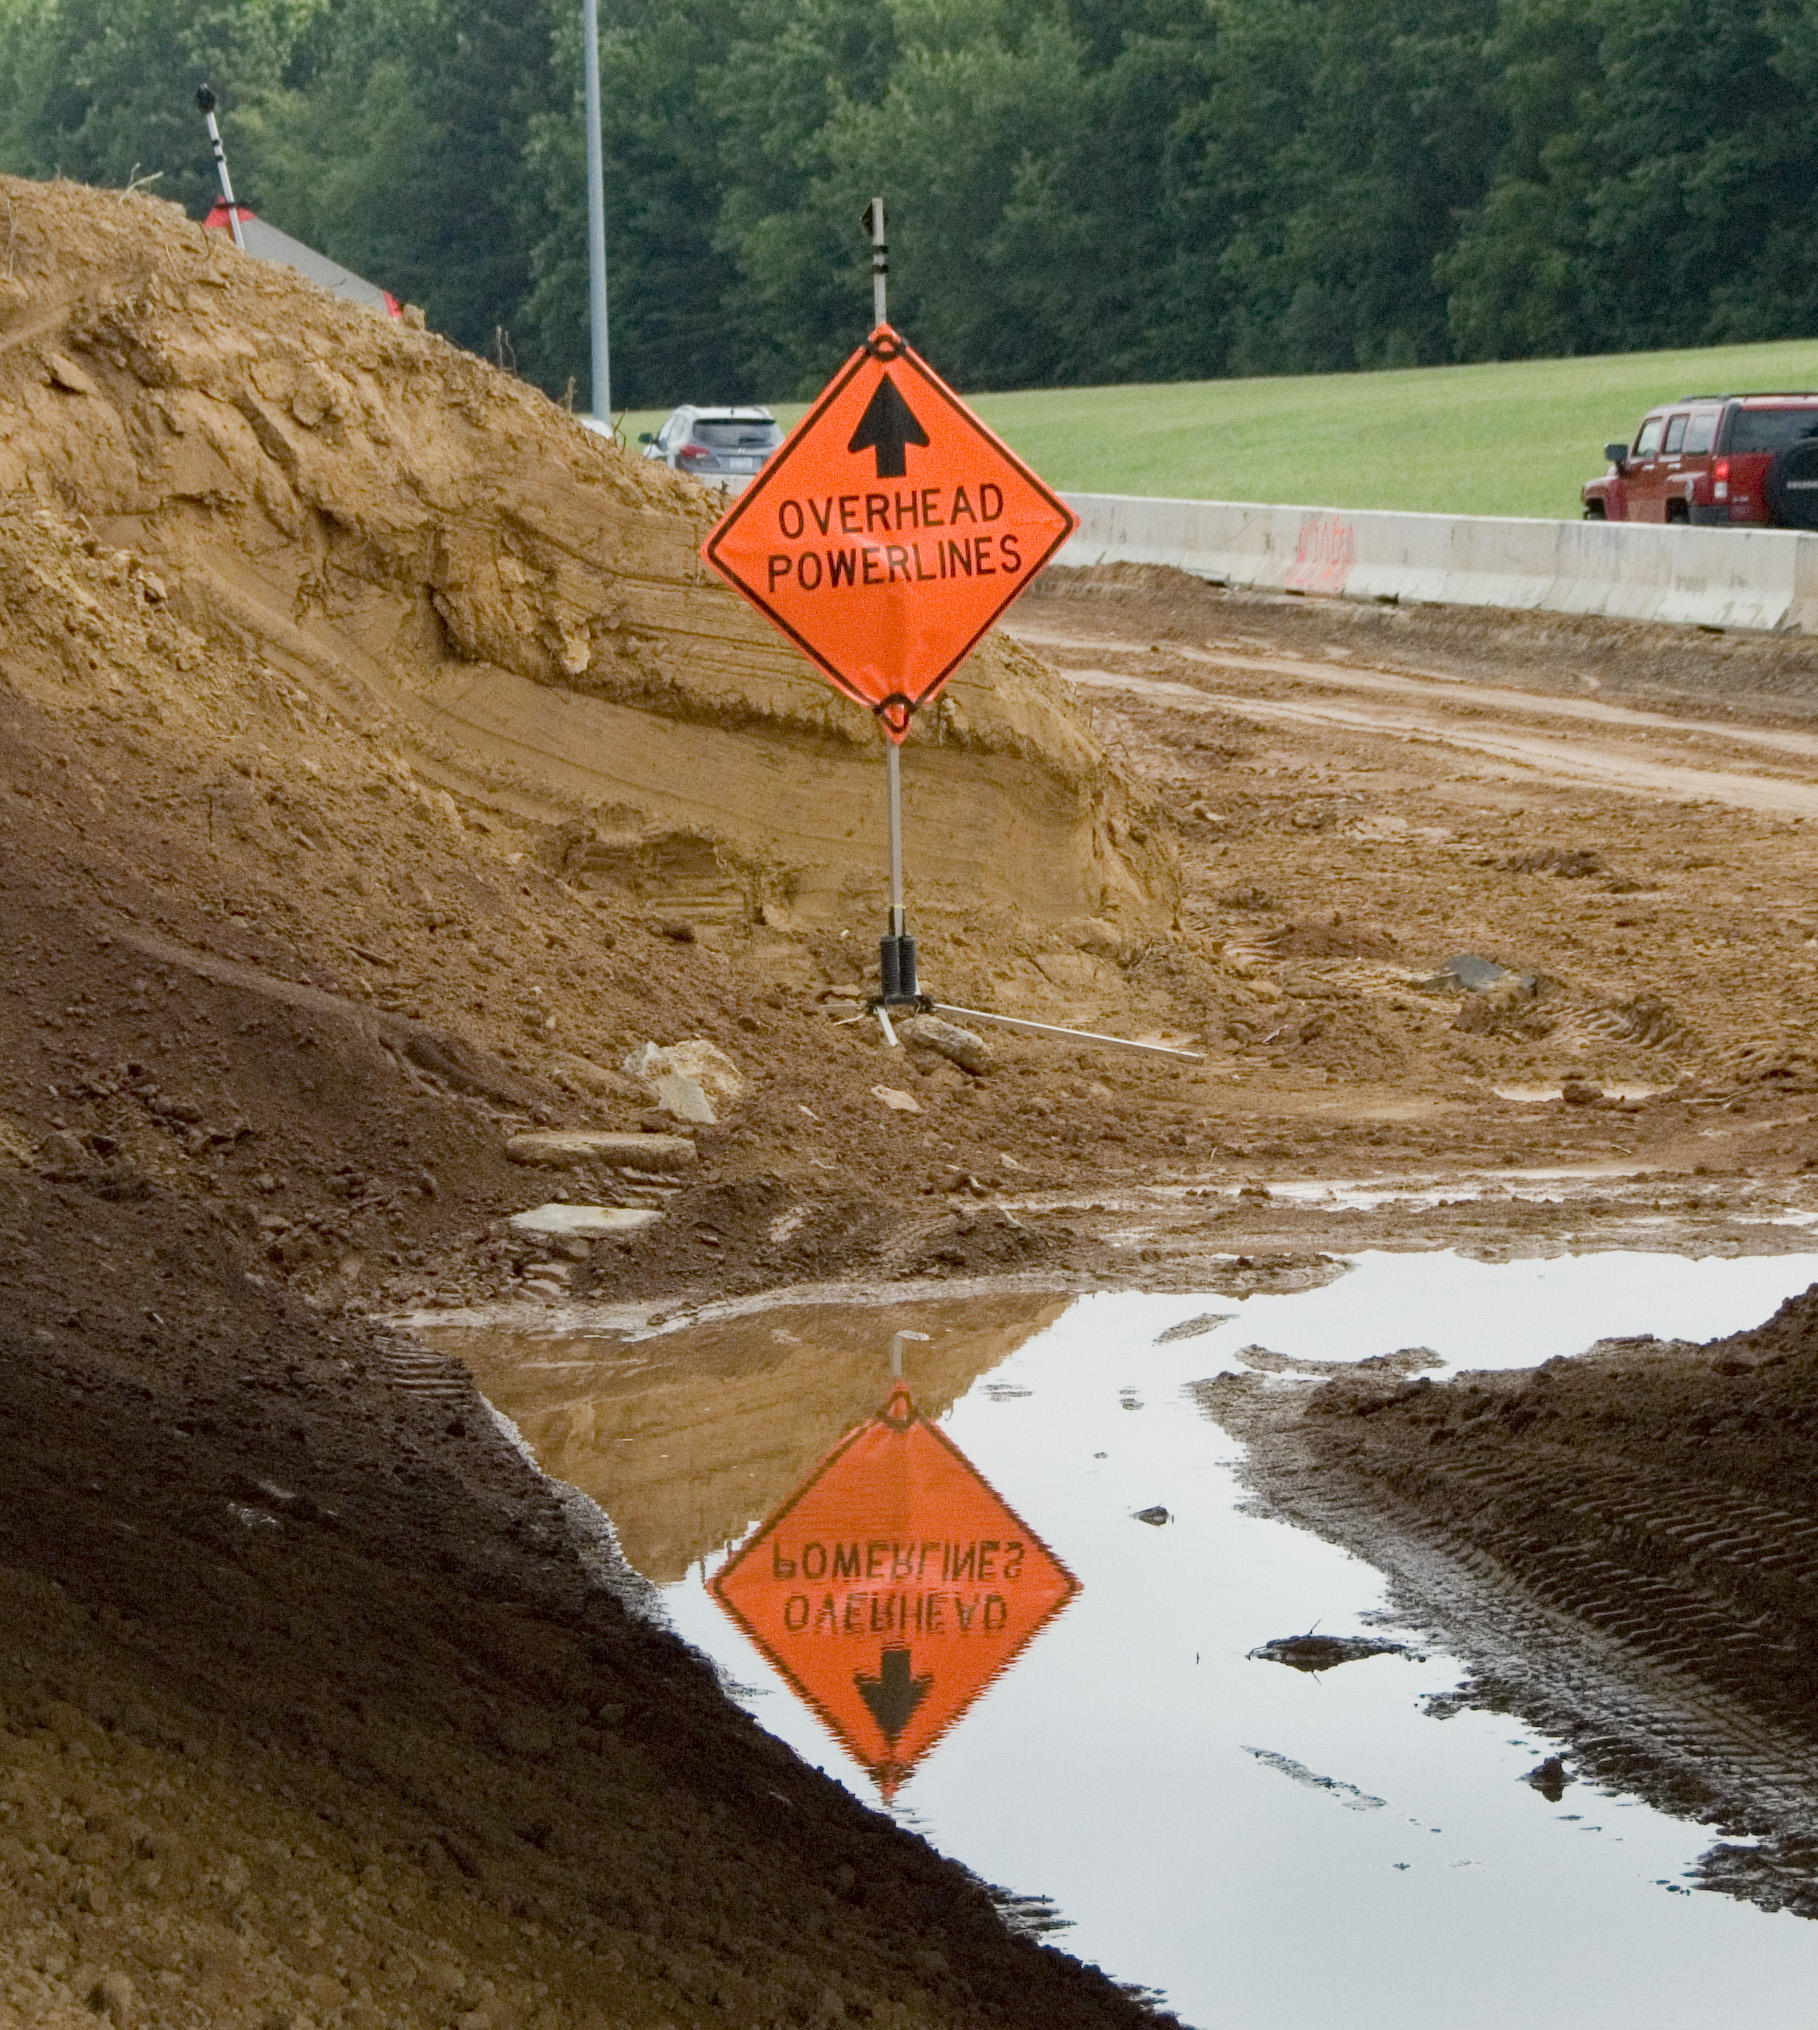 Charlotte road construction projects - I 77 Toll Lane Construction Near Exit 23 In Huntersville